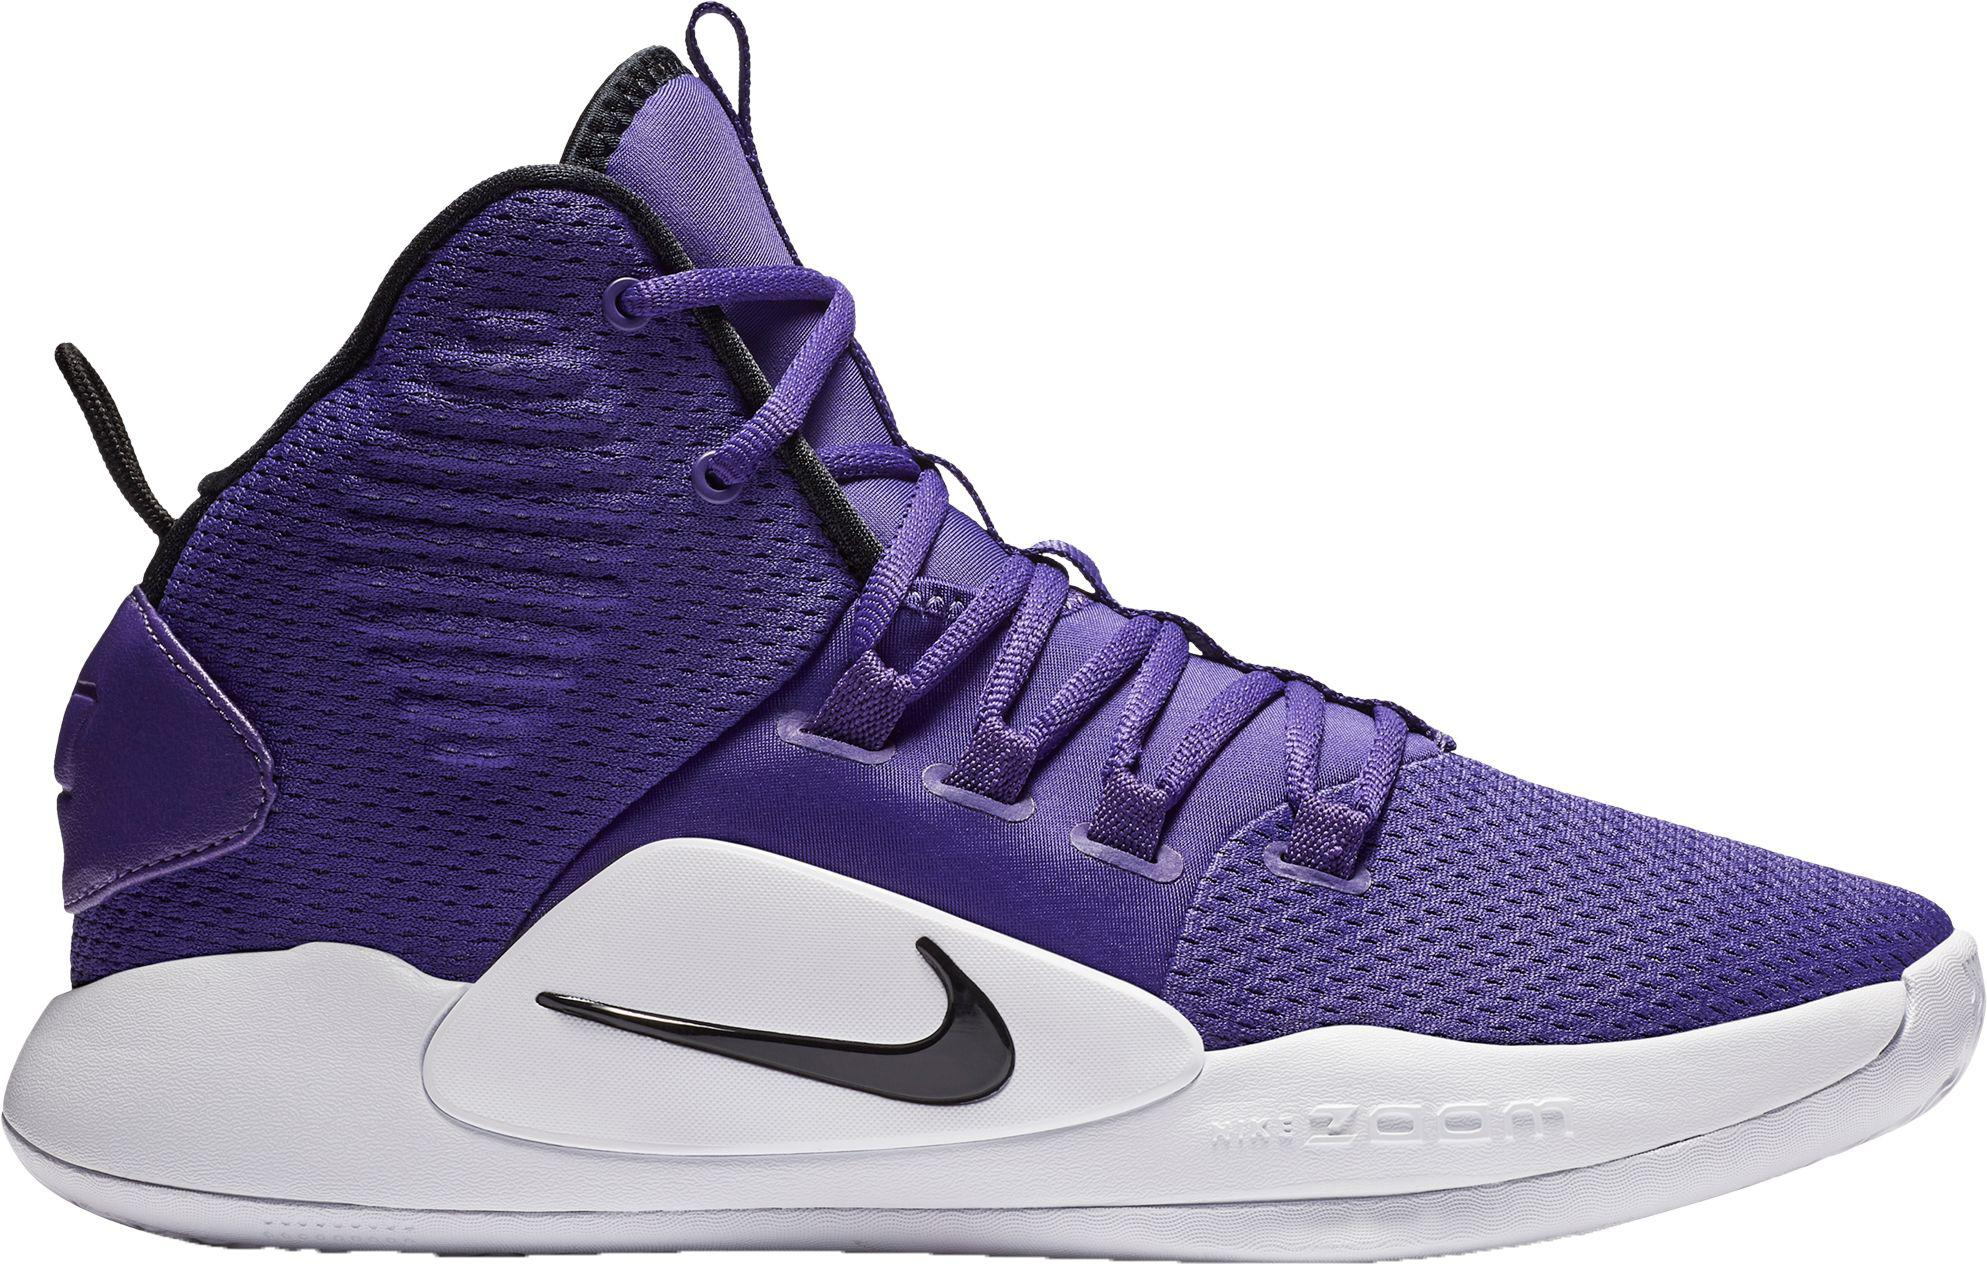 1d1a02f0ee4f Nike Hyperdunk X Mid Tb Basketball Shoes in Purple for Men - Lyst